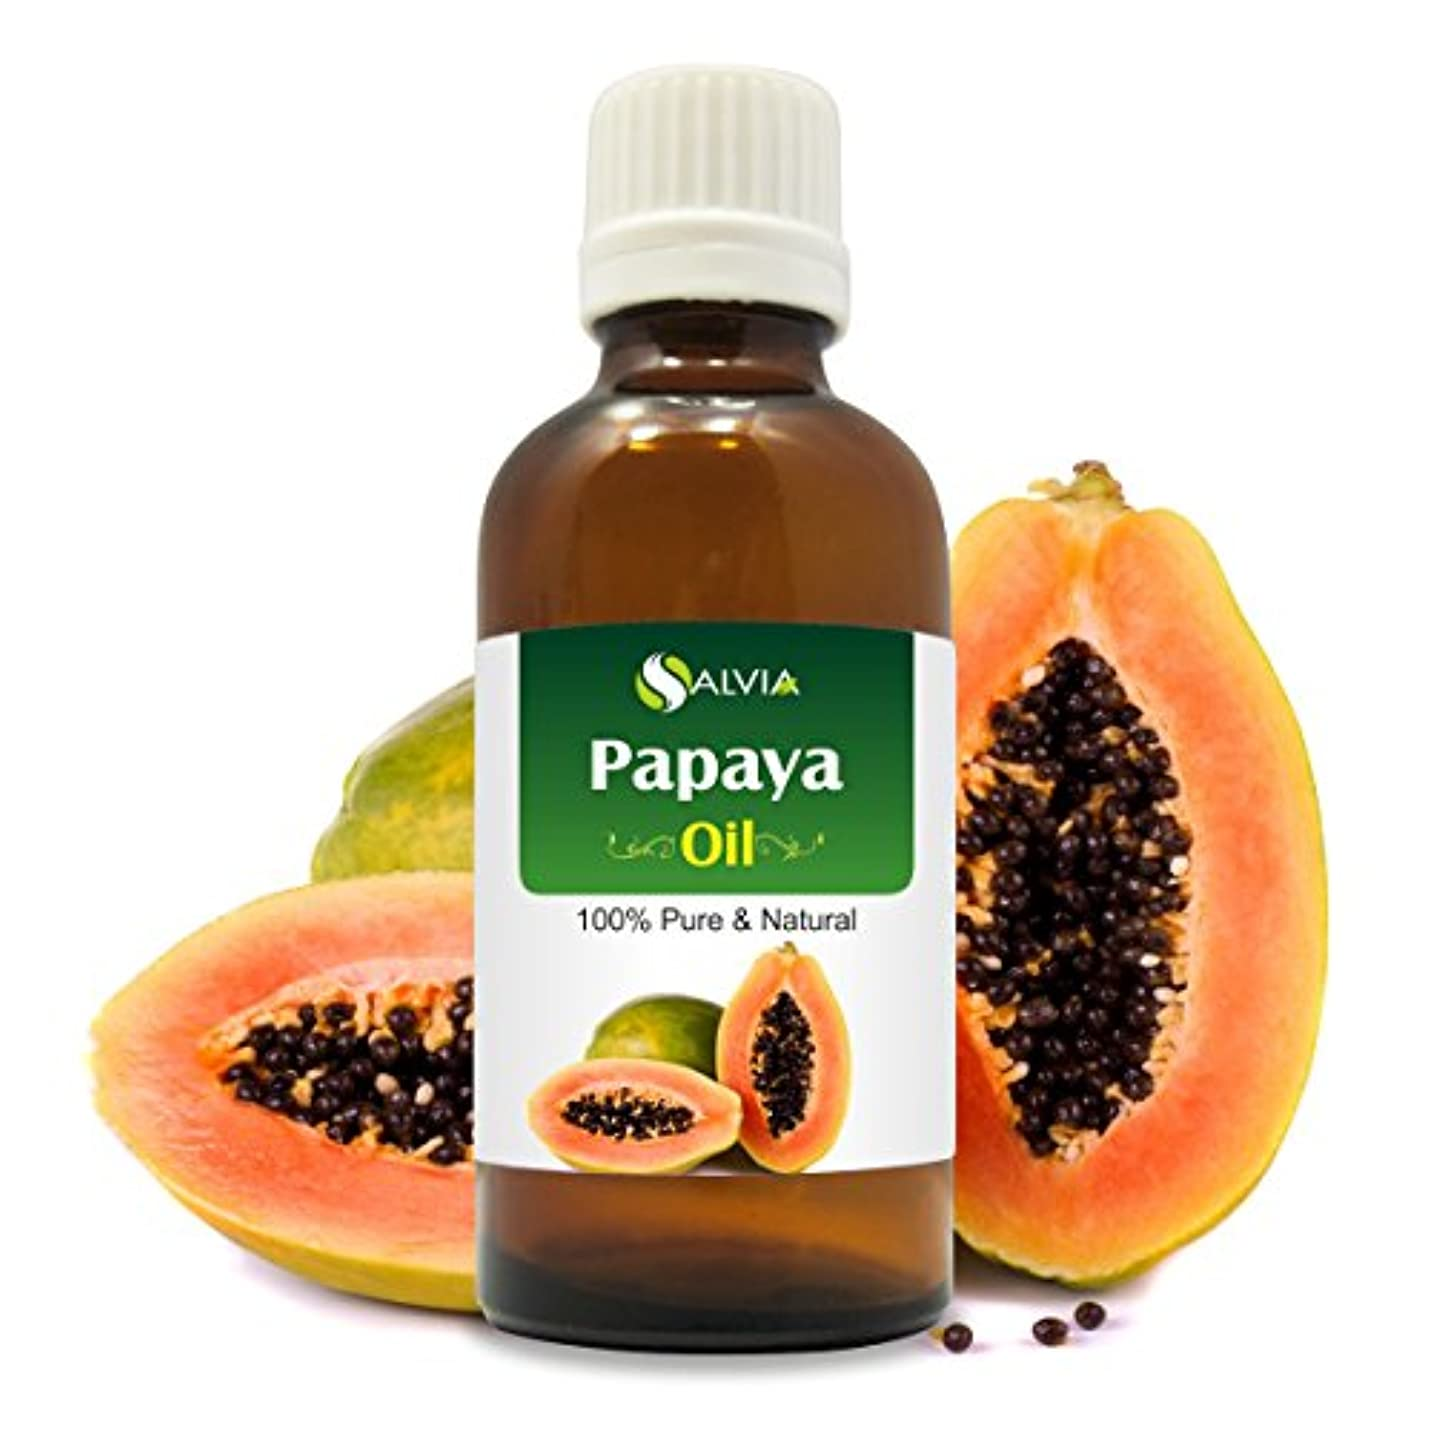 アンデス山脈資格挑発するPAPAYA OIL 100% NATURAL PURE UNDILUTED UNCUT ESSENTIAL OIL 50ML